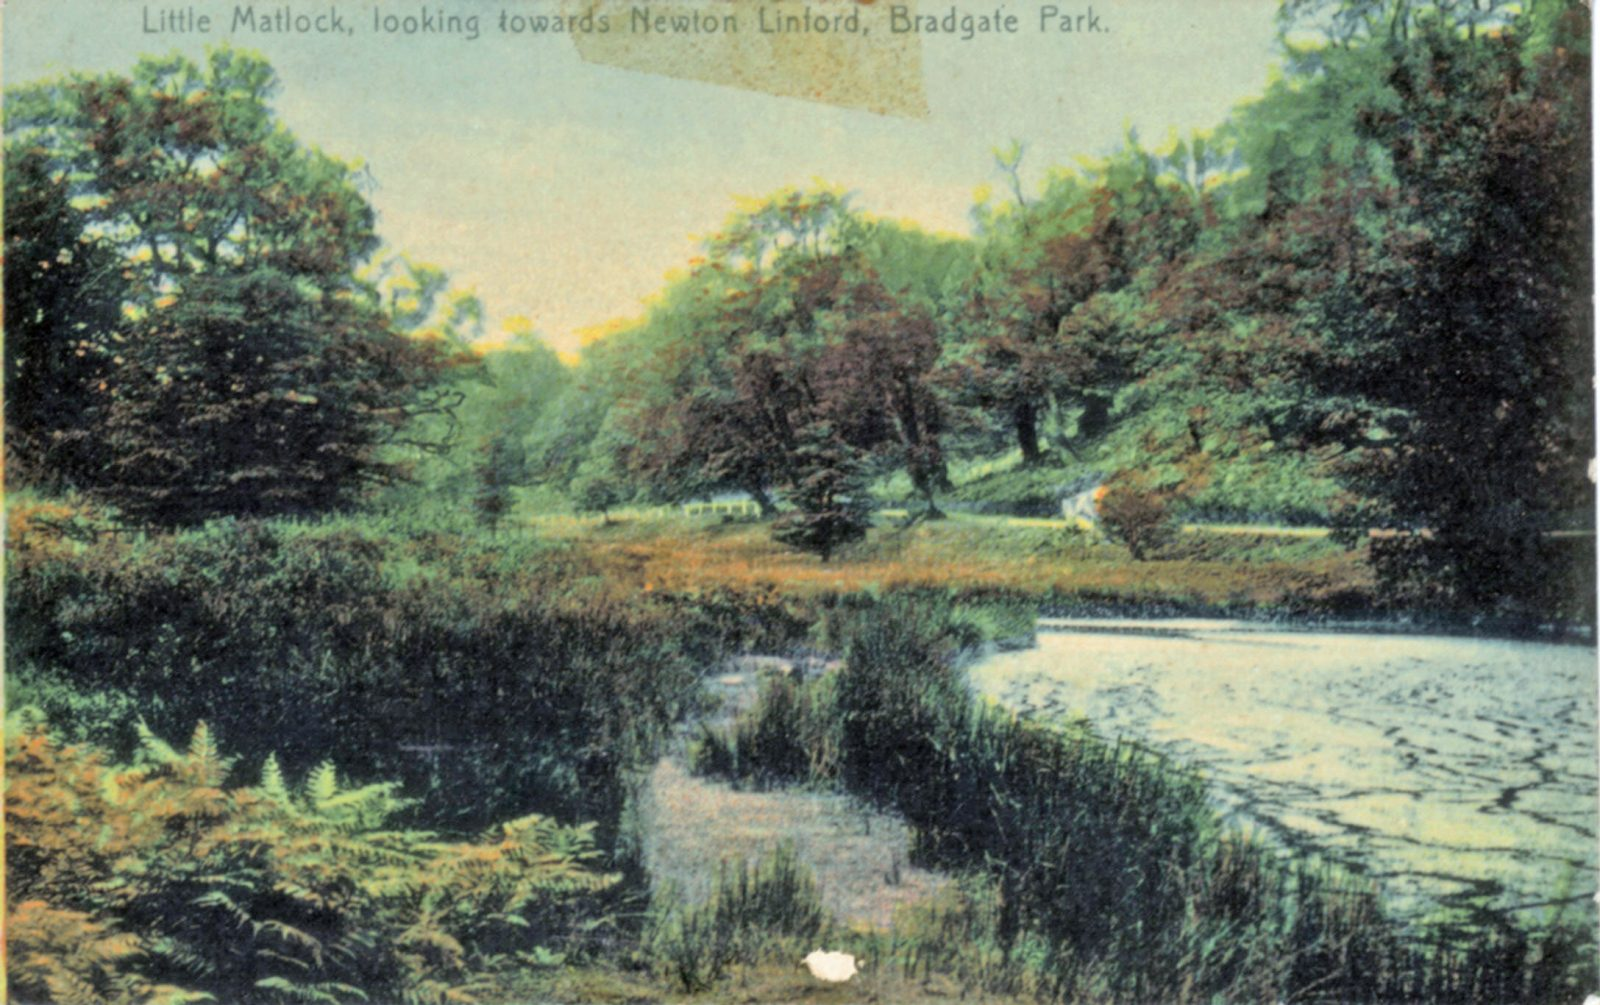 Bradgate Park, Leicester. 1901-1920: The River near Newtown Linford Entrance. Franked 1905 (File:1115)